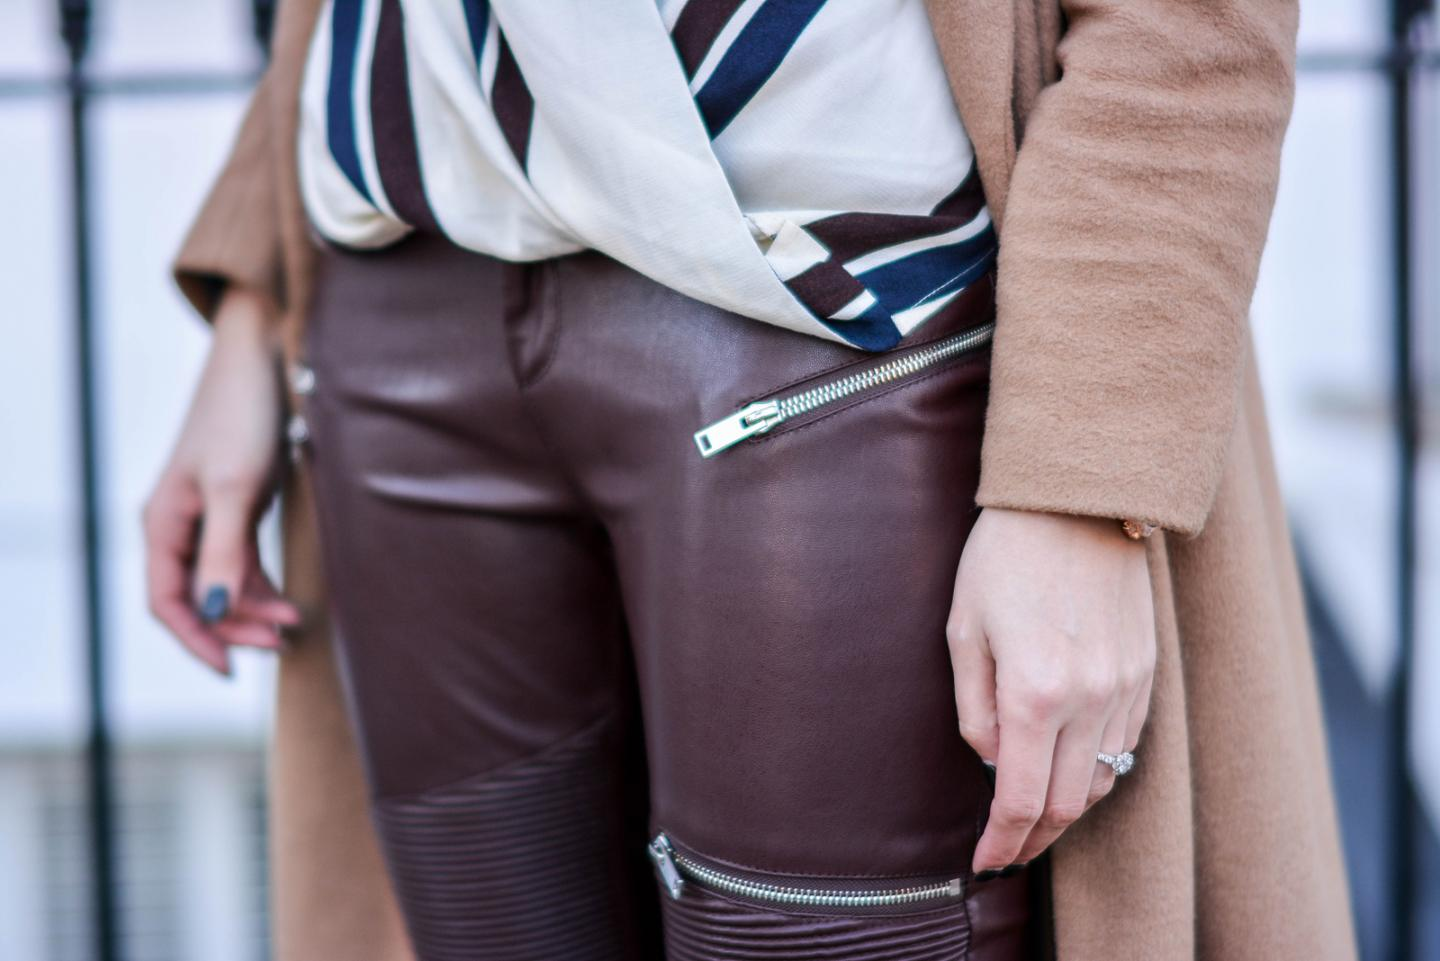 EJSTYLE - Zara burgundy faux leather biker trousers, trousers with zips, River Island camel coat, Topshop stripe dramed blouse, OOTD details